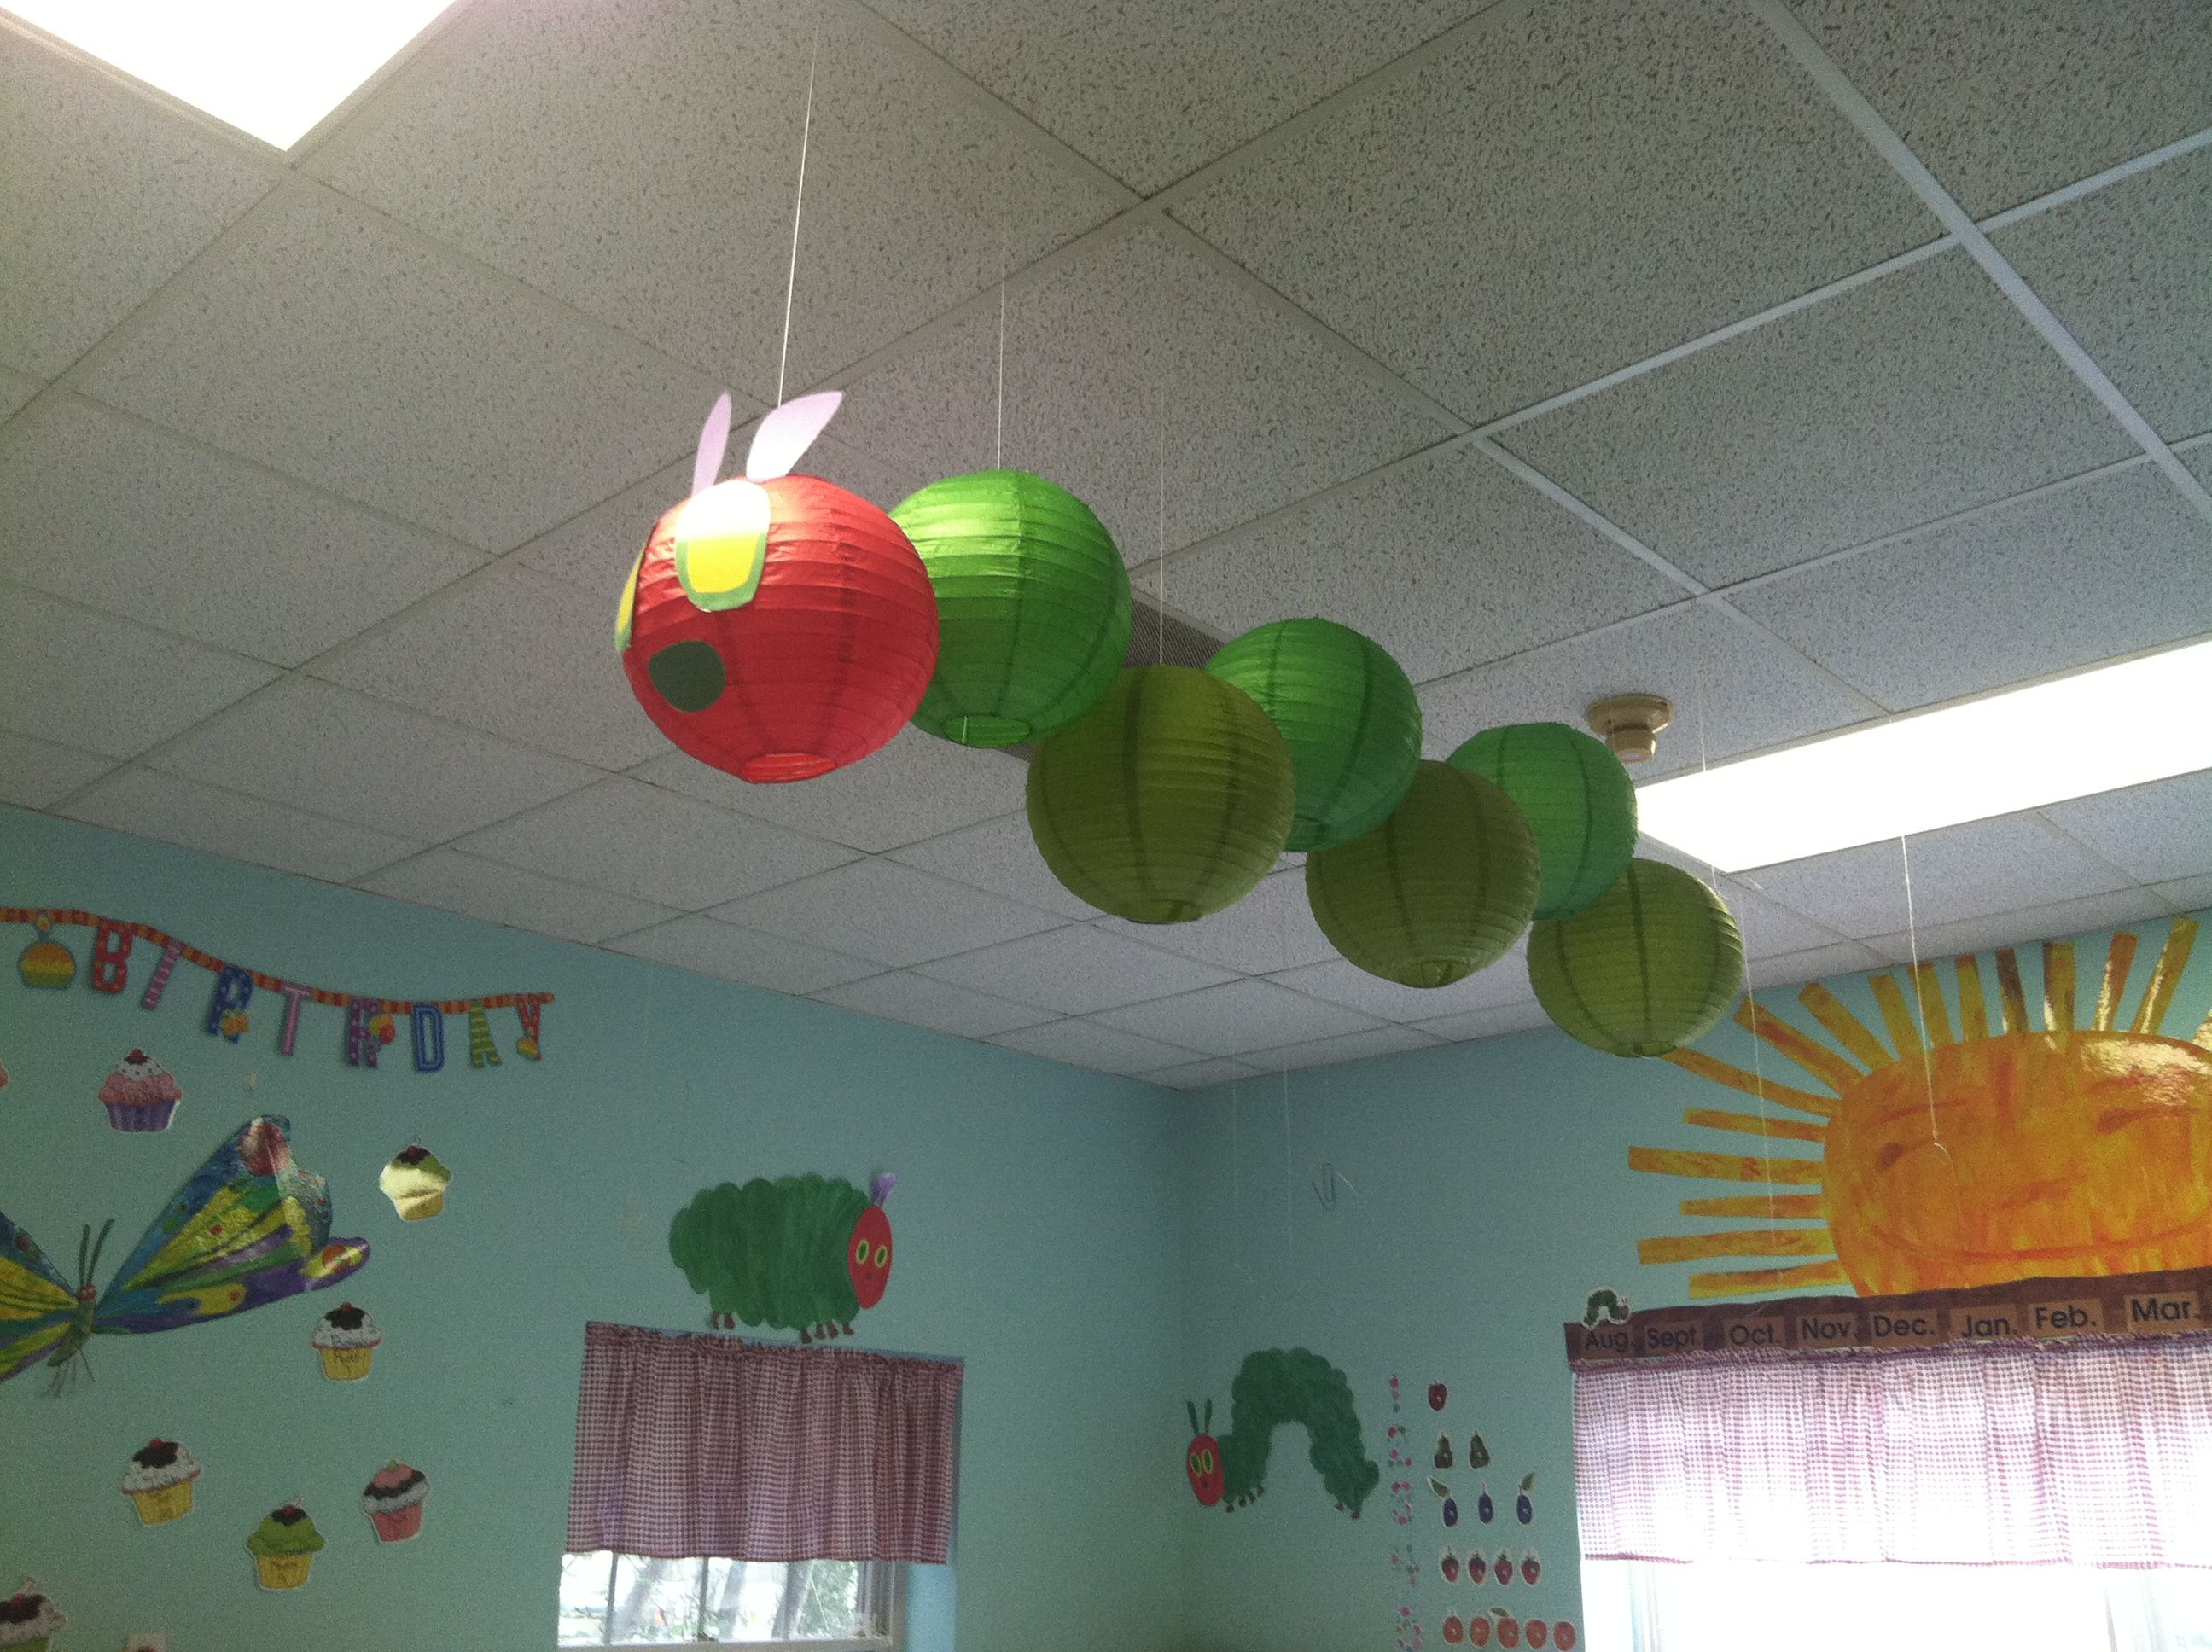 Very hungry caterpillar lanterns hanging from ceiling in for Art and craft for school decoration